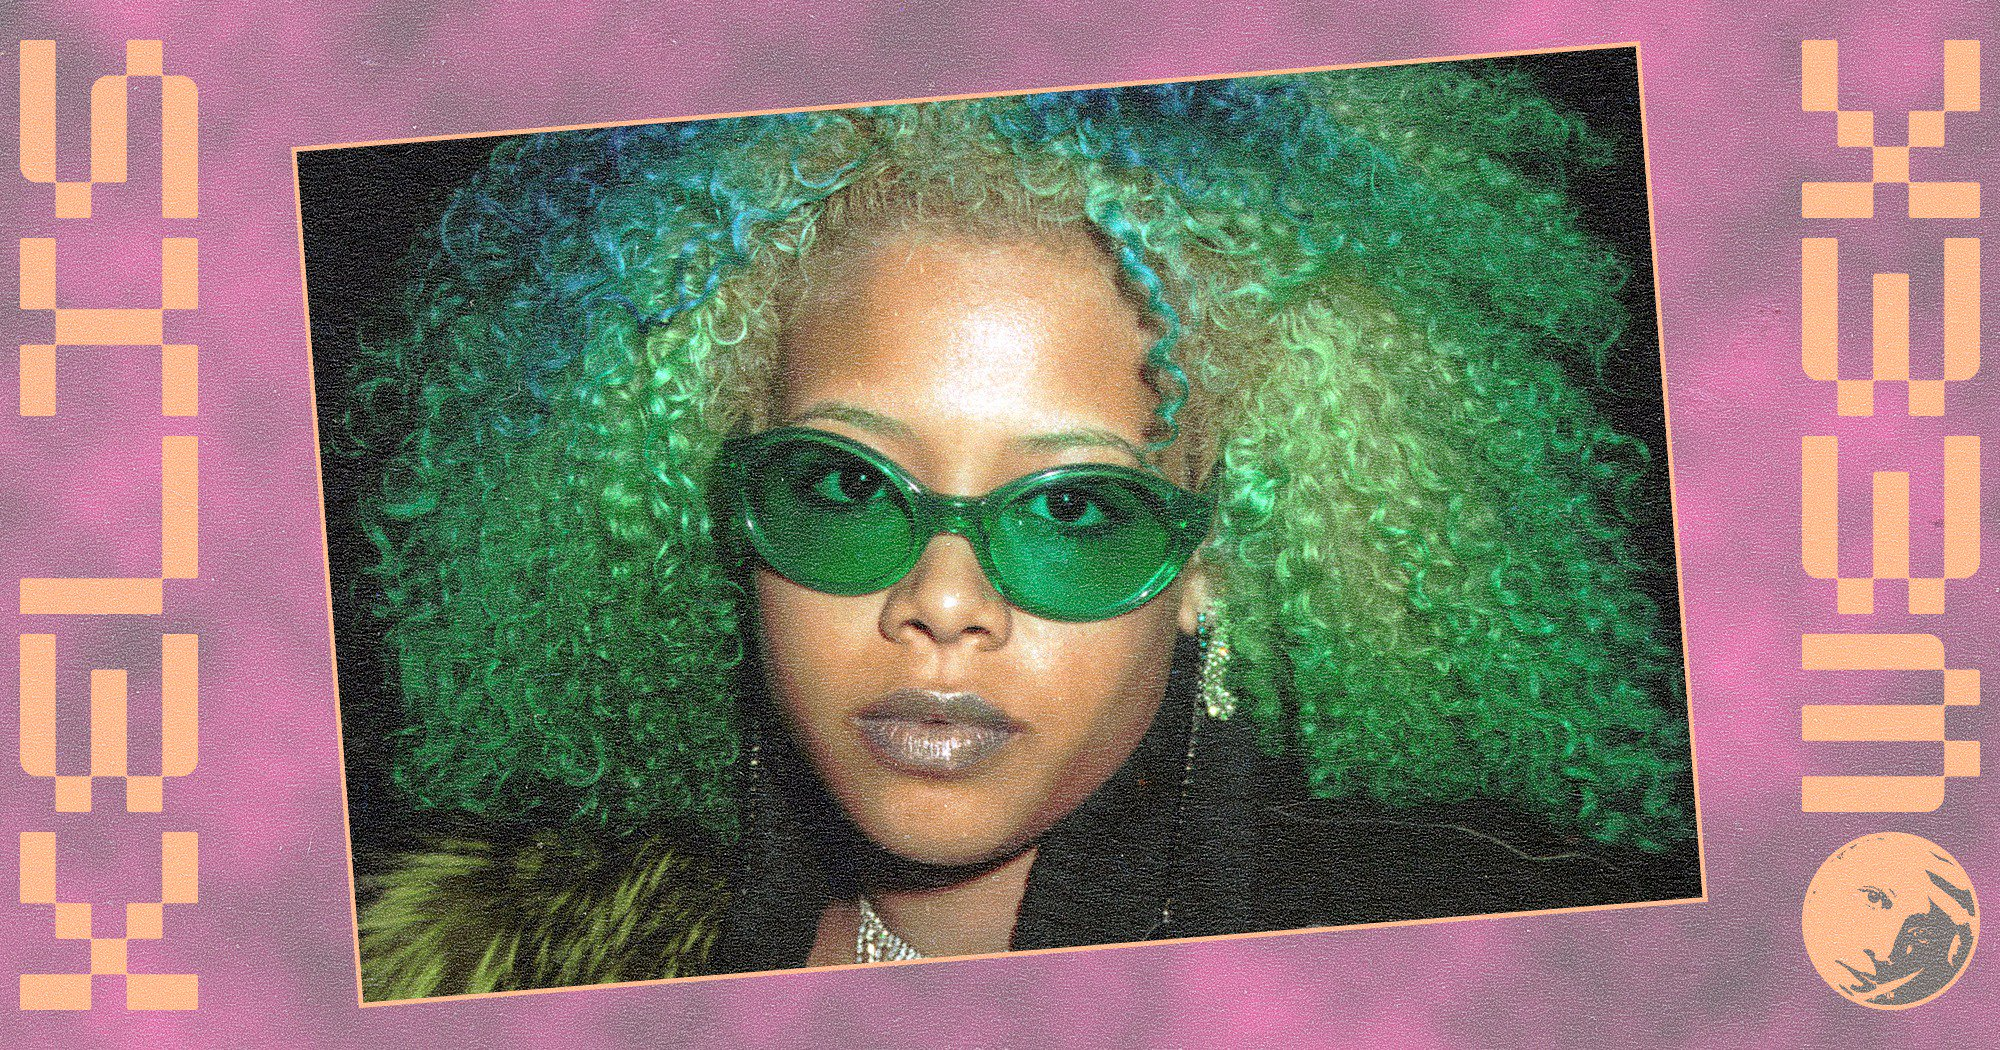 7 iconic @kelis looks that prove her style has always been ahead of its time. #KelisWeek https://t.co/jFpDrmvZi8 https://t.co/qgor4Mokbe